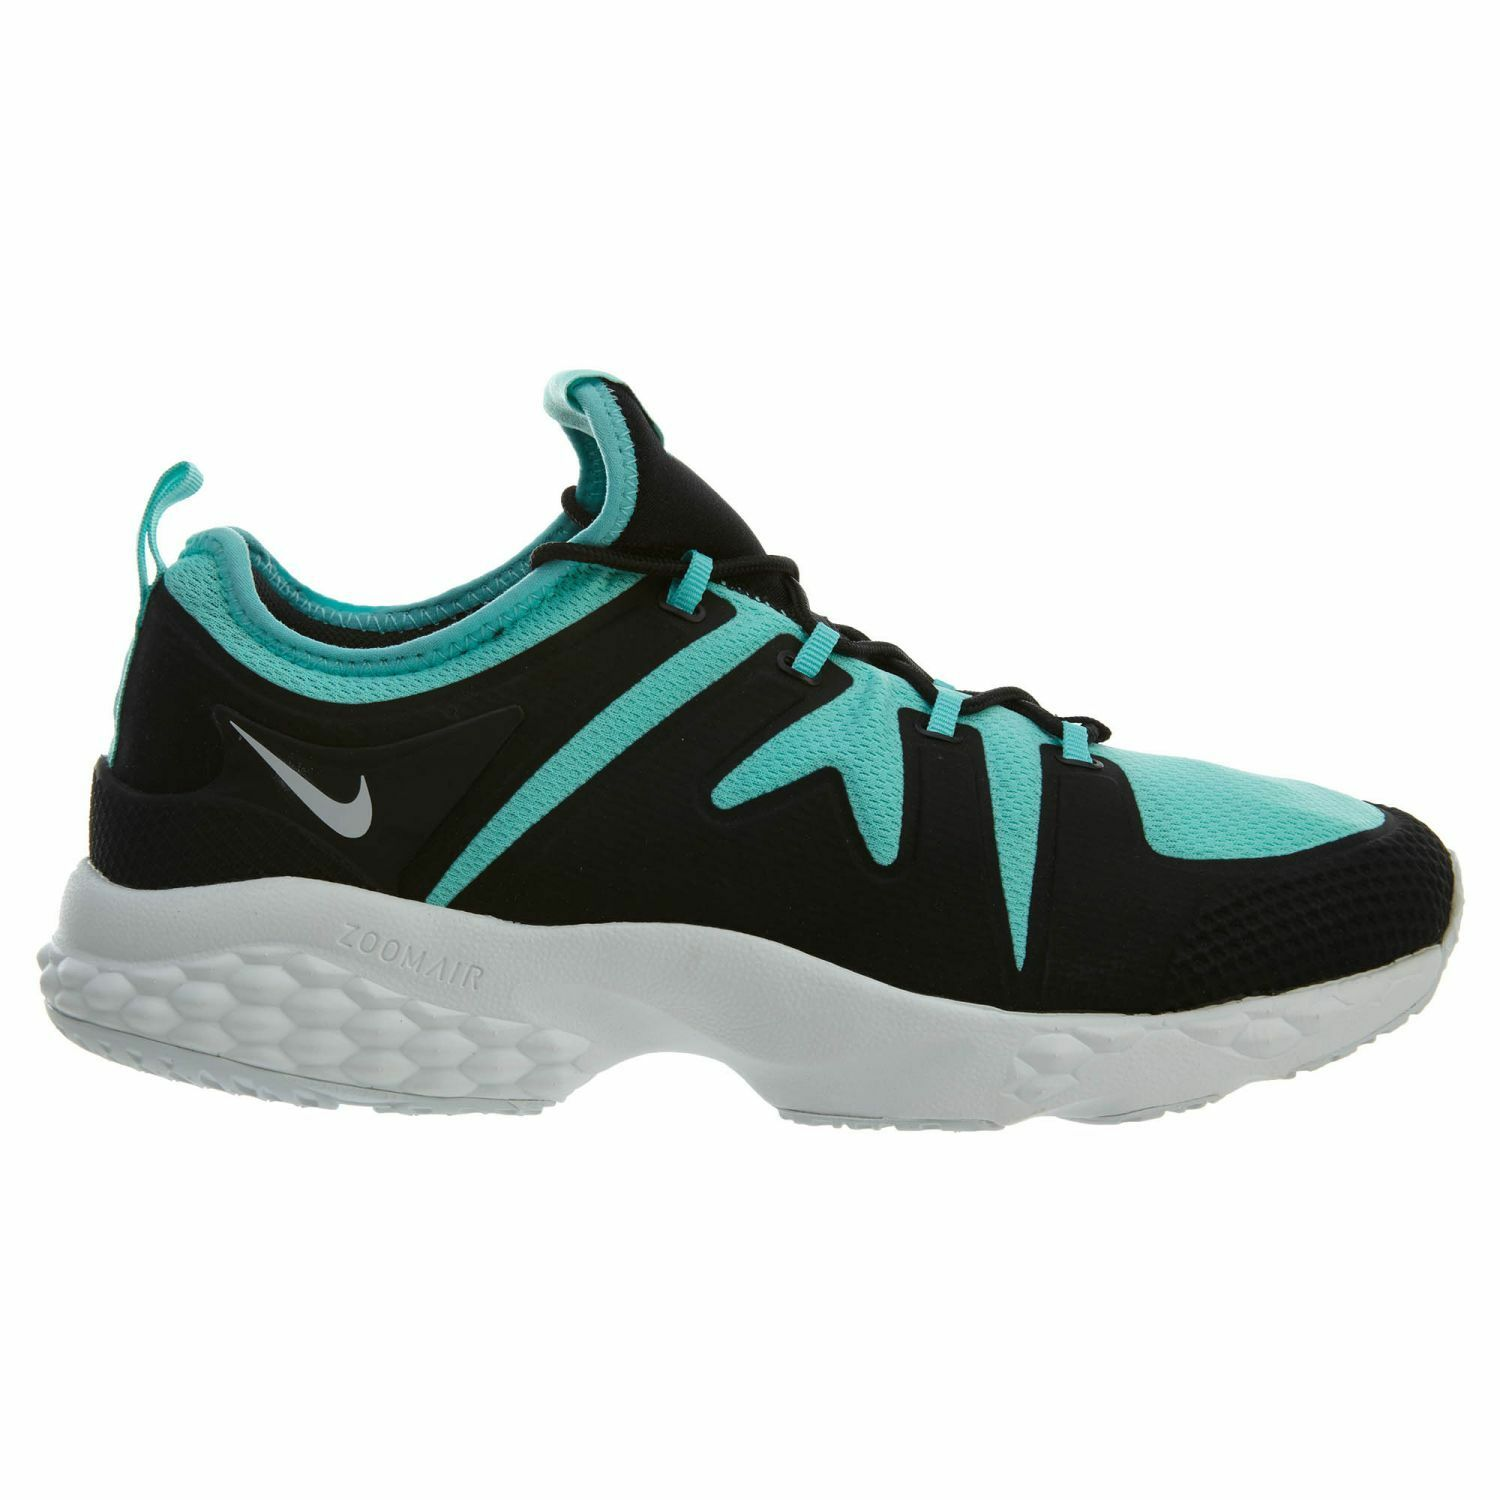 Nike Air Zoom LWP '16 SP Mens 918226-006 Black Turquoise Running Shoes Size 10